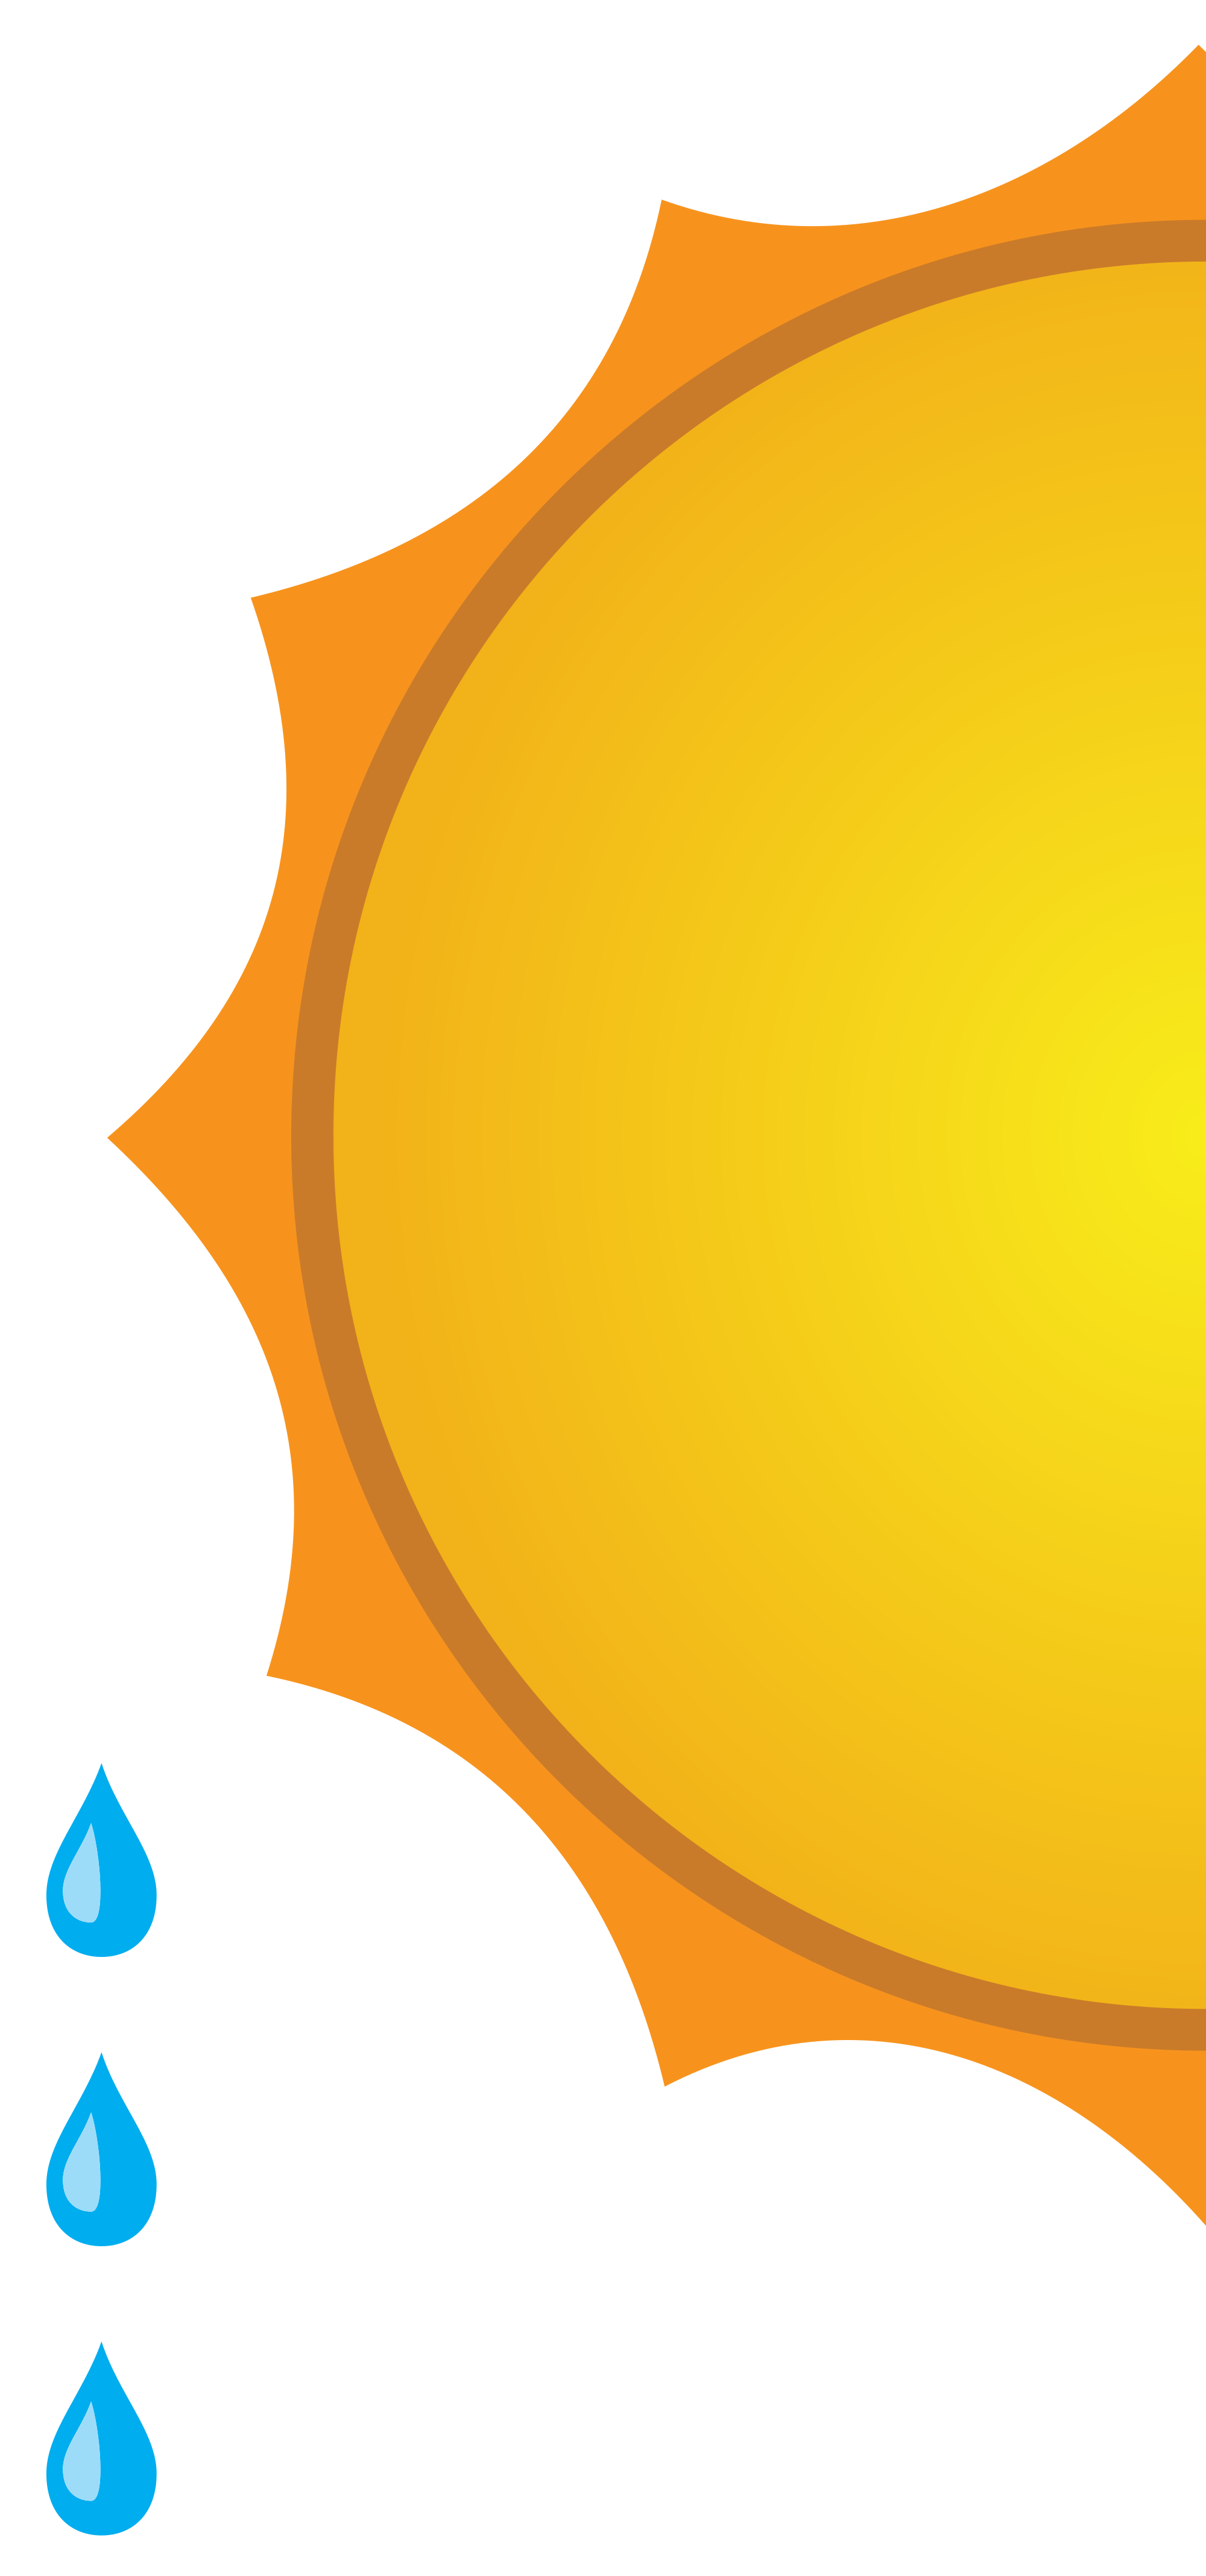 File weather forecast showers. Showering clipart sunny